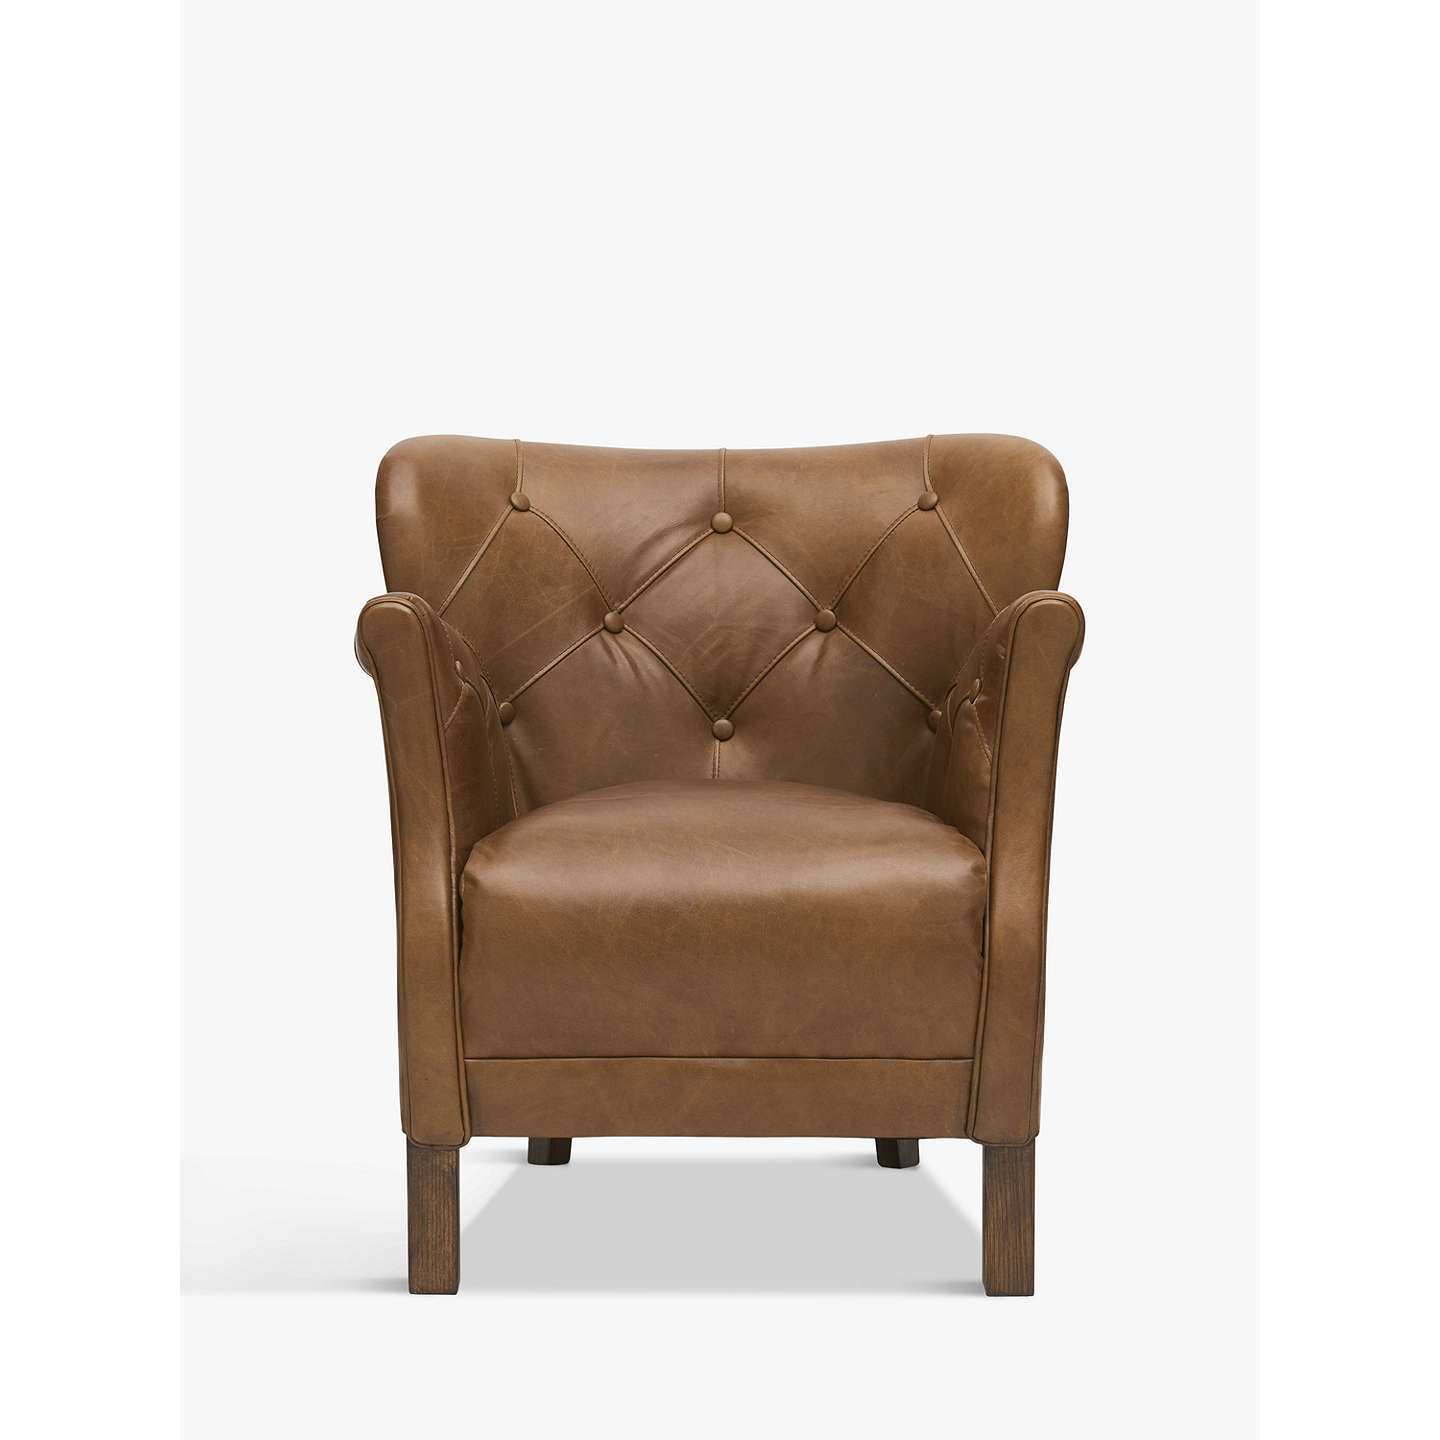 Halo Little Professor Buttoned Leather Chair at John Lewis